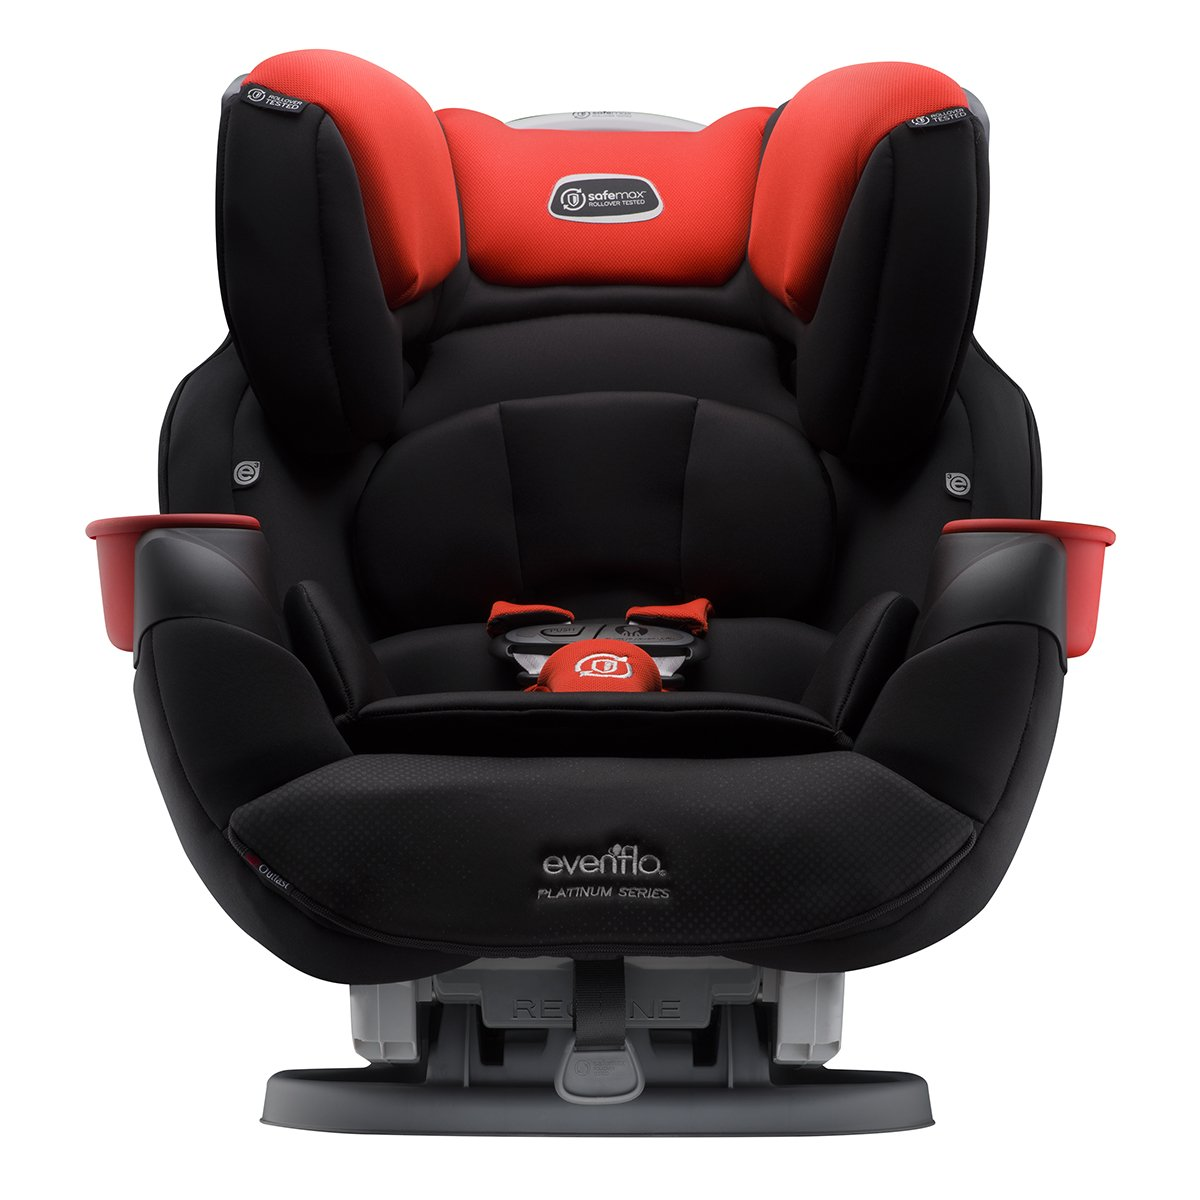 evenflo safemax platinum all in one convertible car seat madalynn baby. Black Bedroom Furniture Sets. Home Design Ideas